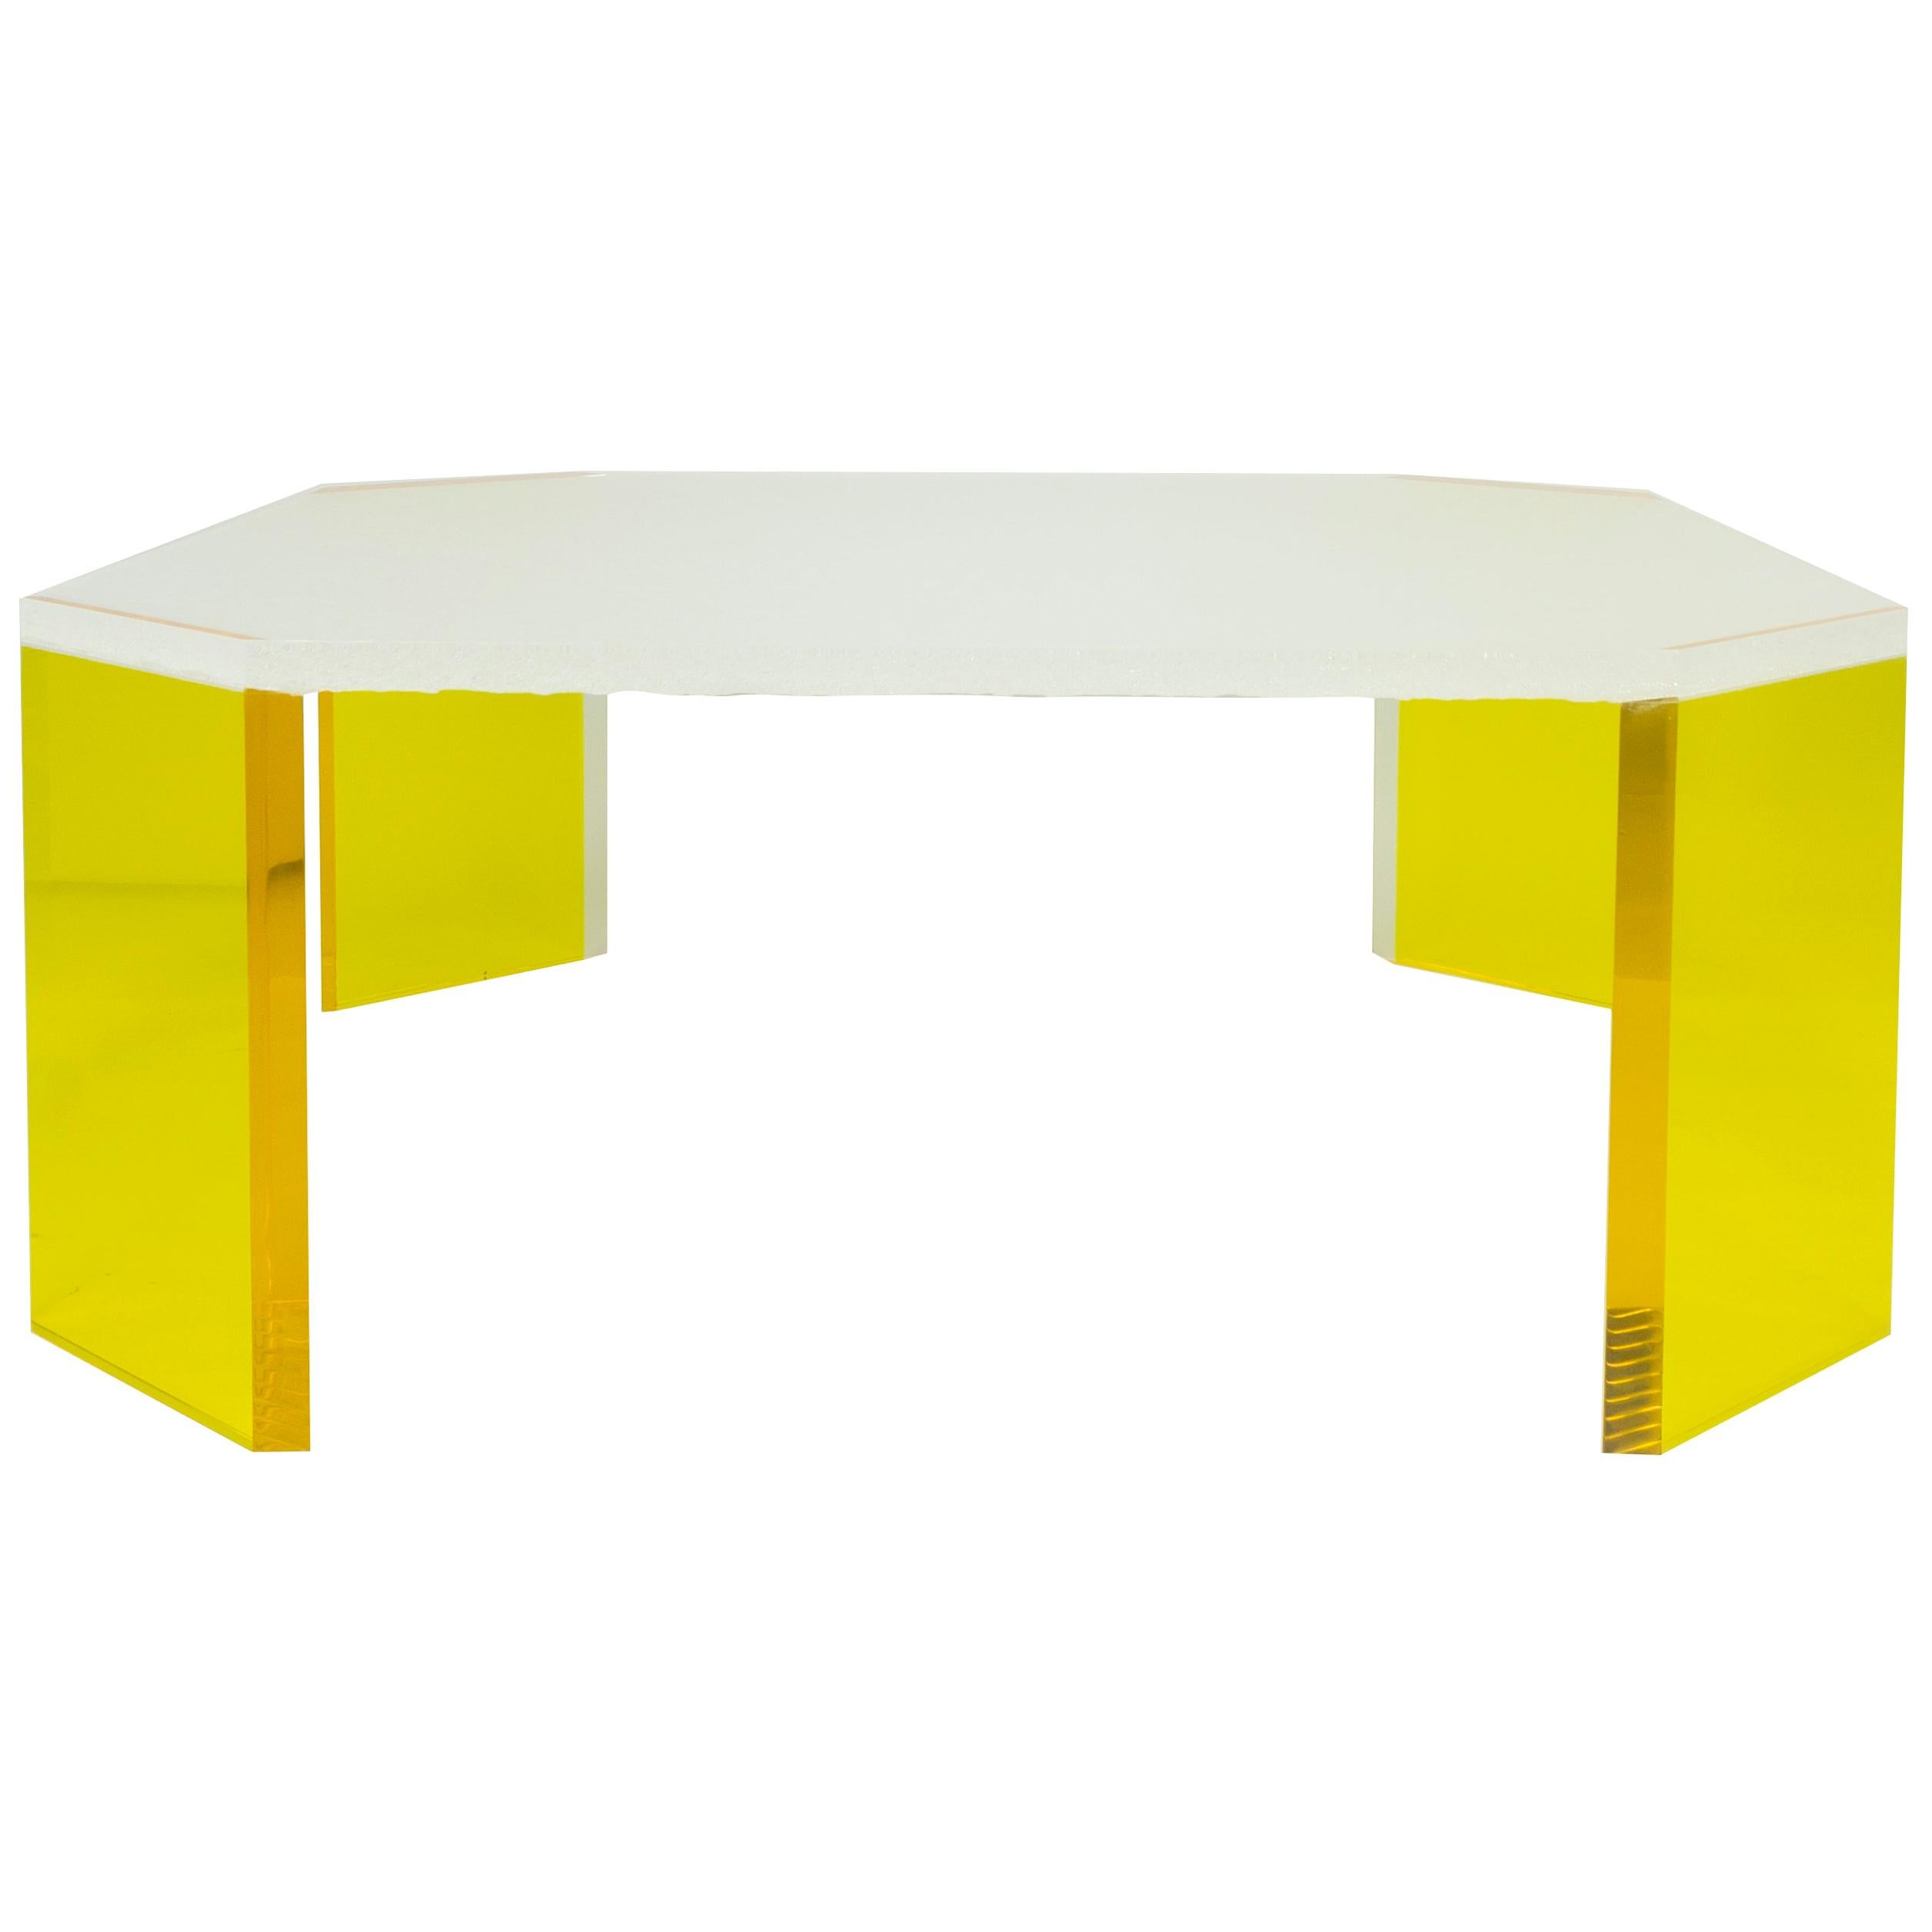 Square Lucite Coffee Table with Crystallized Effect